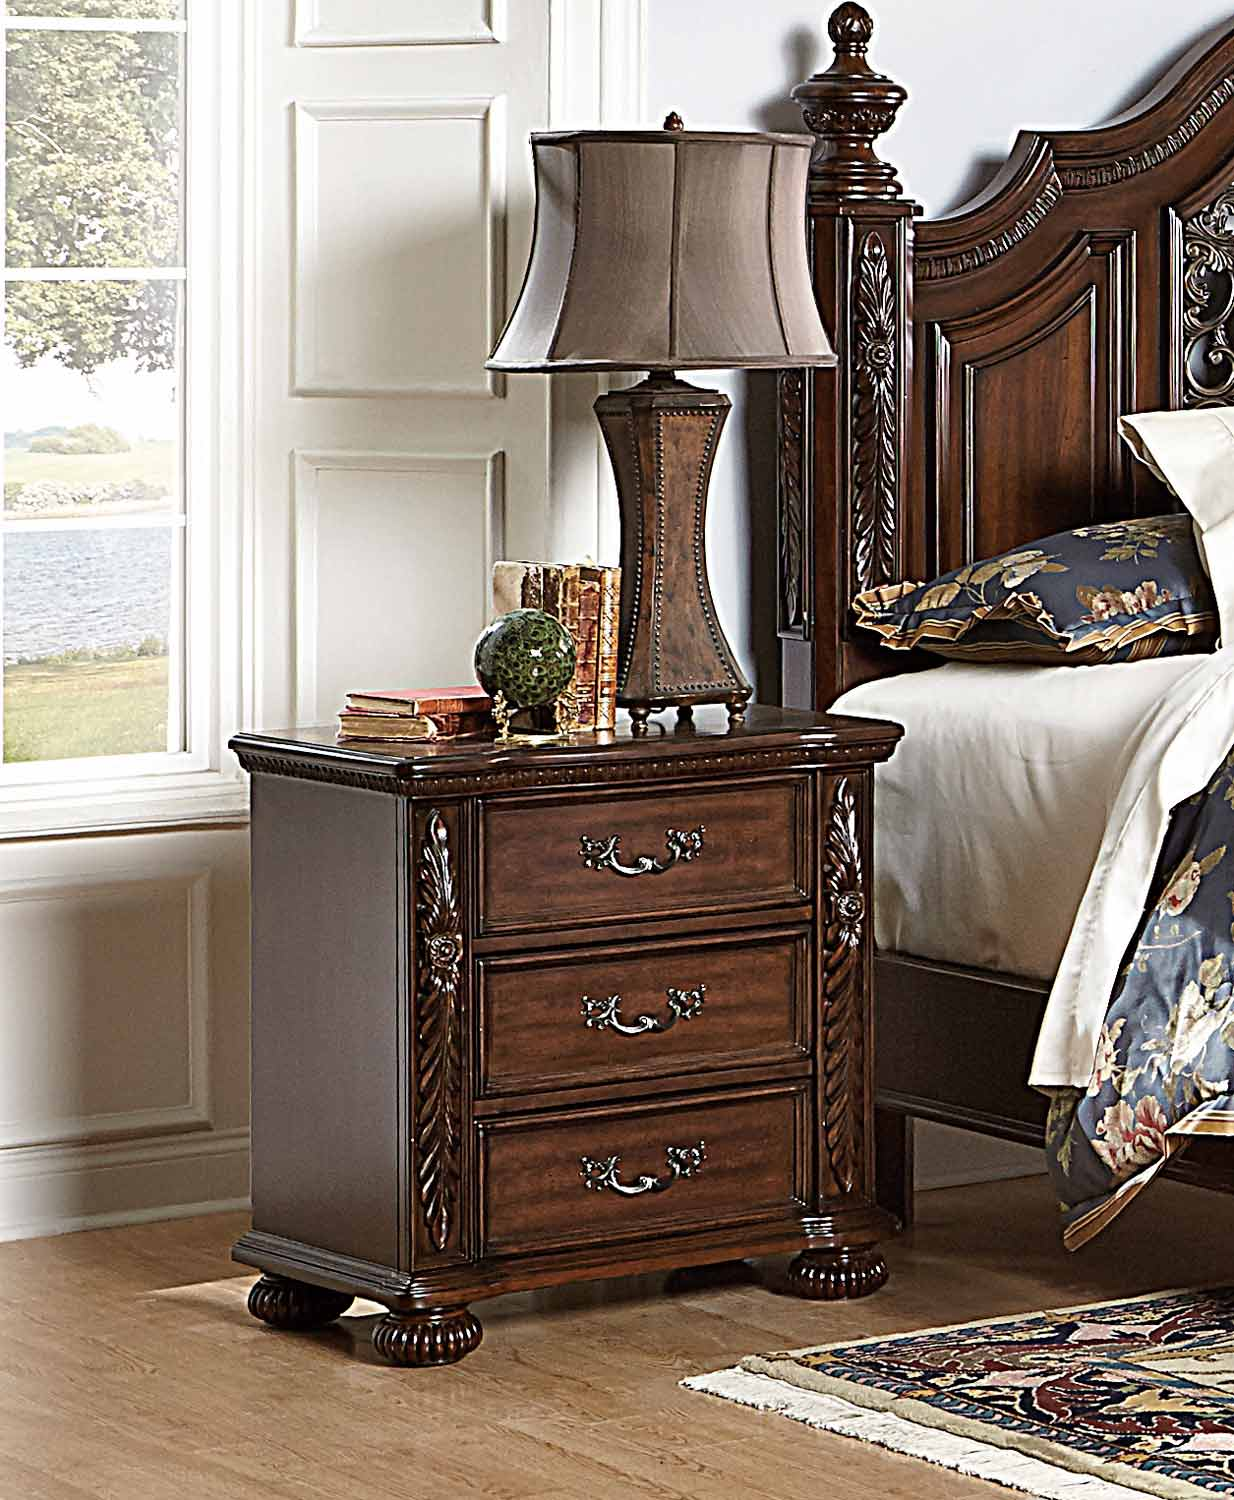 Homelegance Augustine Court Night Stand - Rich Brown Cherry